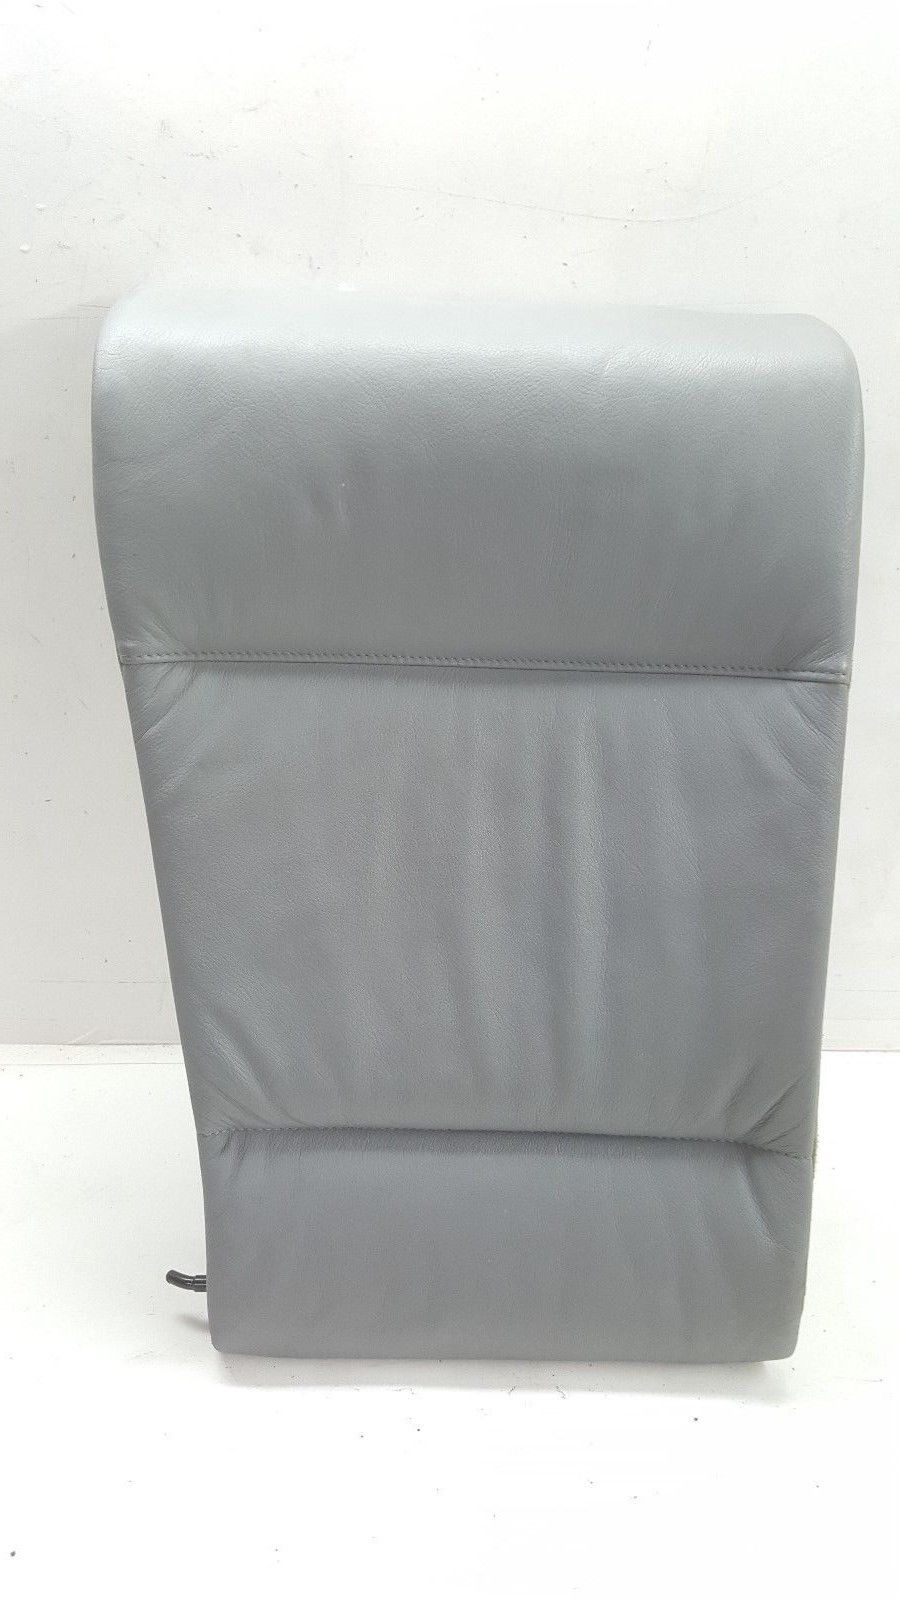 1999-2005 BMW 325Ci 323Ci 328Ci 330Ci COUPE RIGHT REAR UPPER SEAT BACK e46   Does not apply